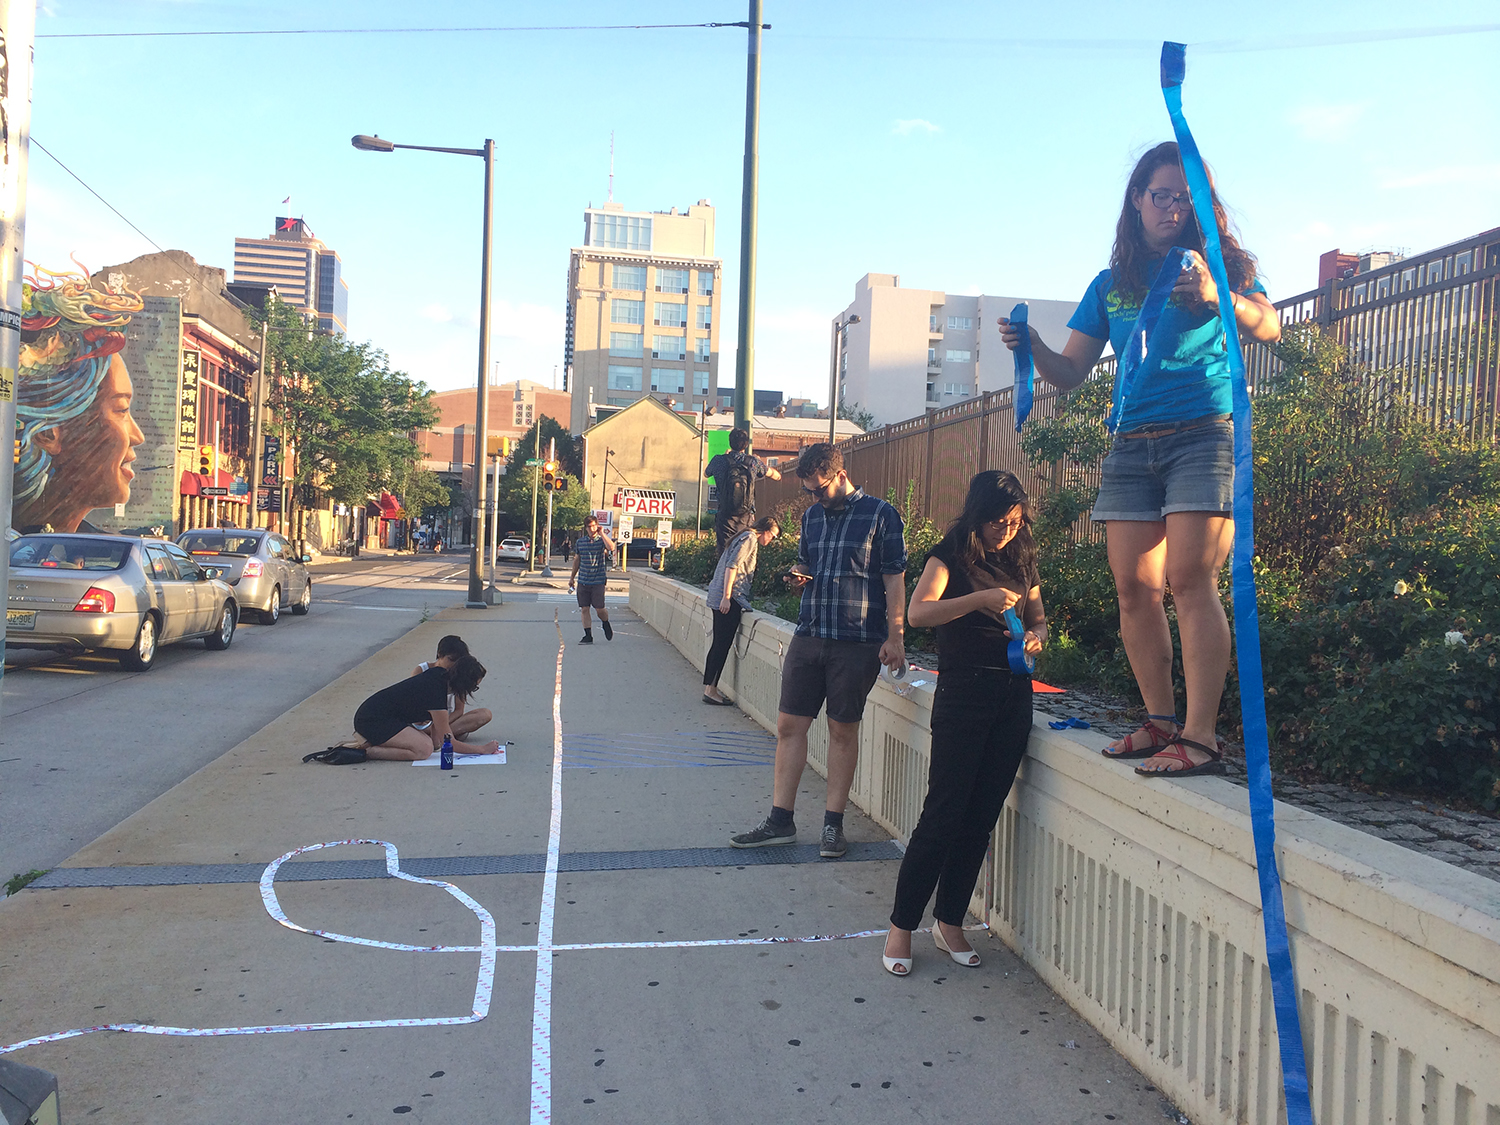 Slow Lane - | A STRETCH OF SIDEWALK COMPLETE WITH HOPSCOTCH, A DANCE STATION, STREAMERS, AND SIGNS ENCOURAGING PEOPLE TO SLOW DOWN. |